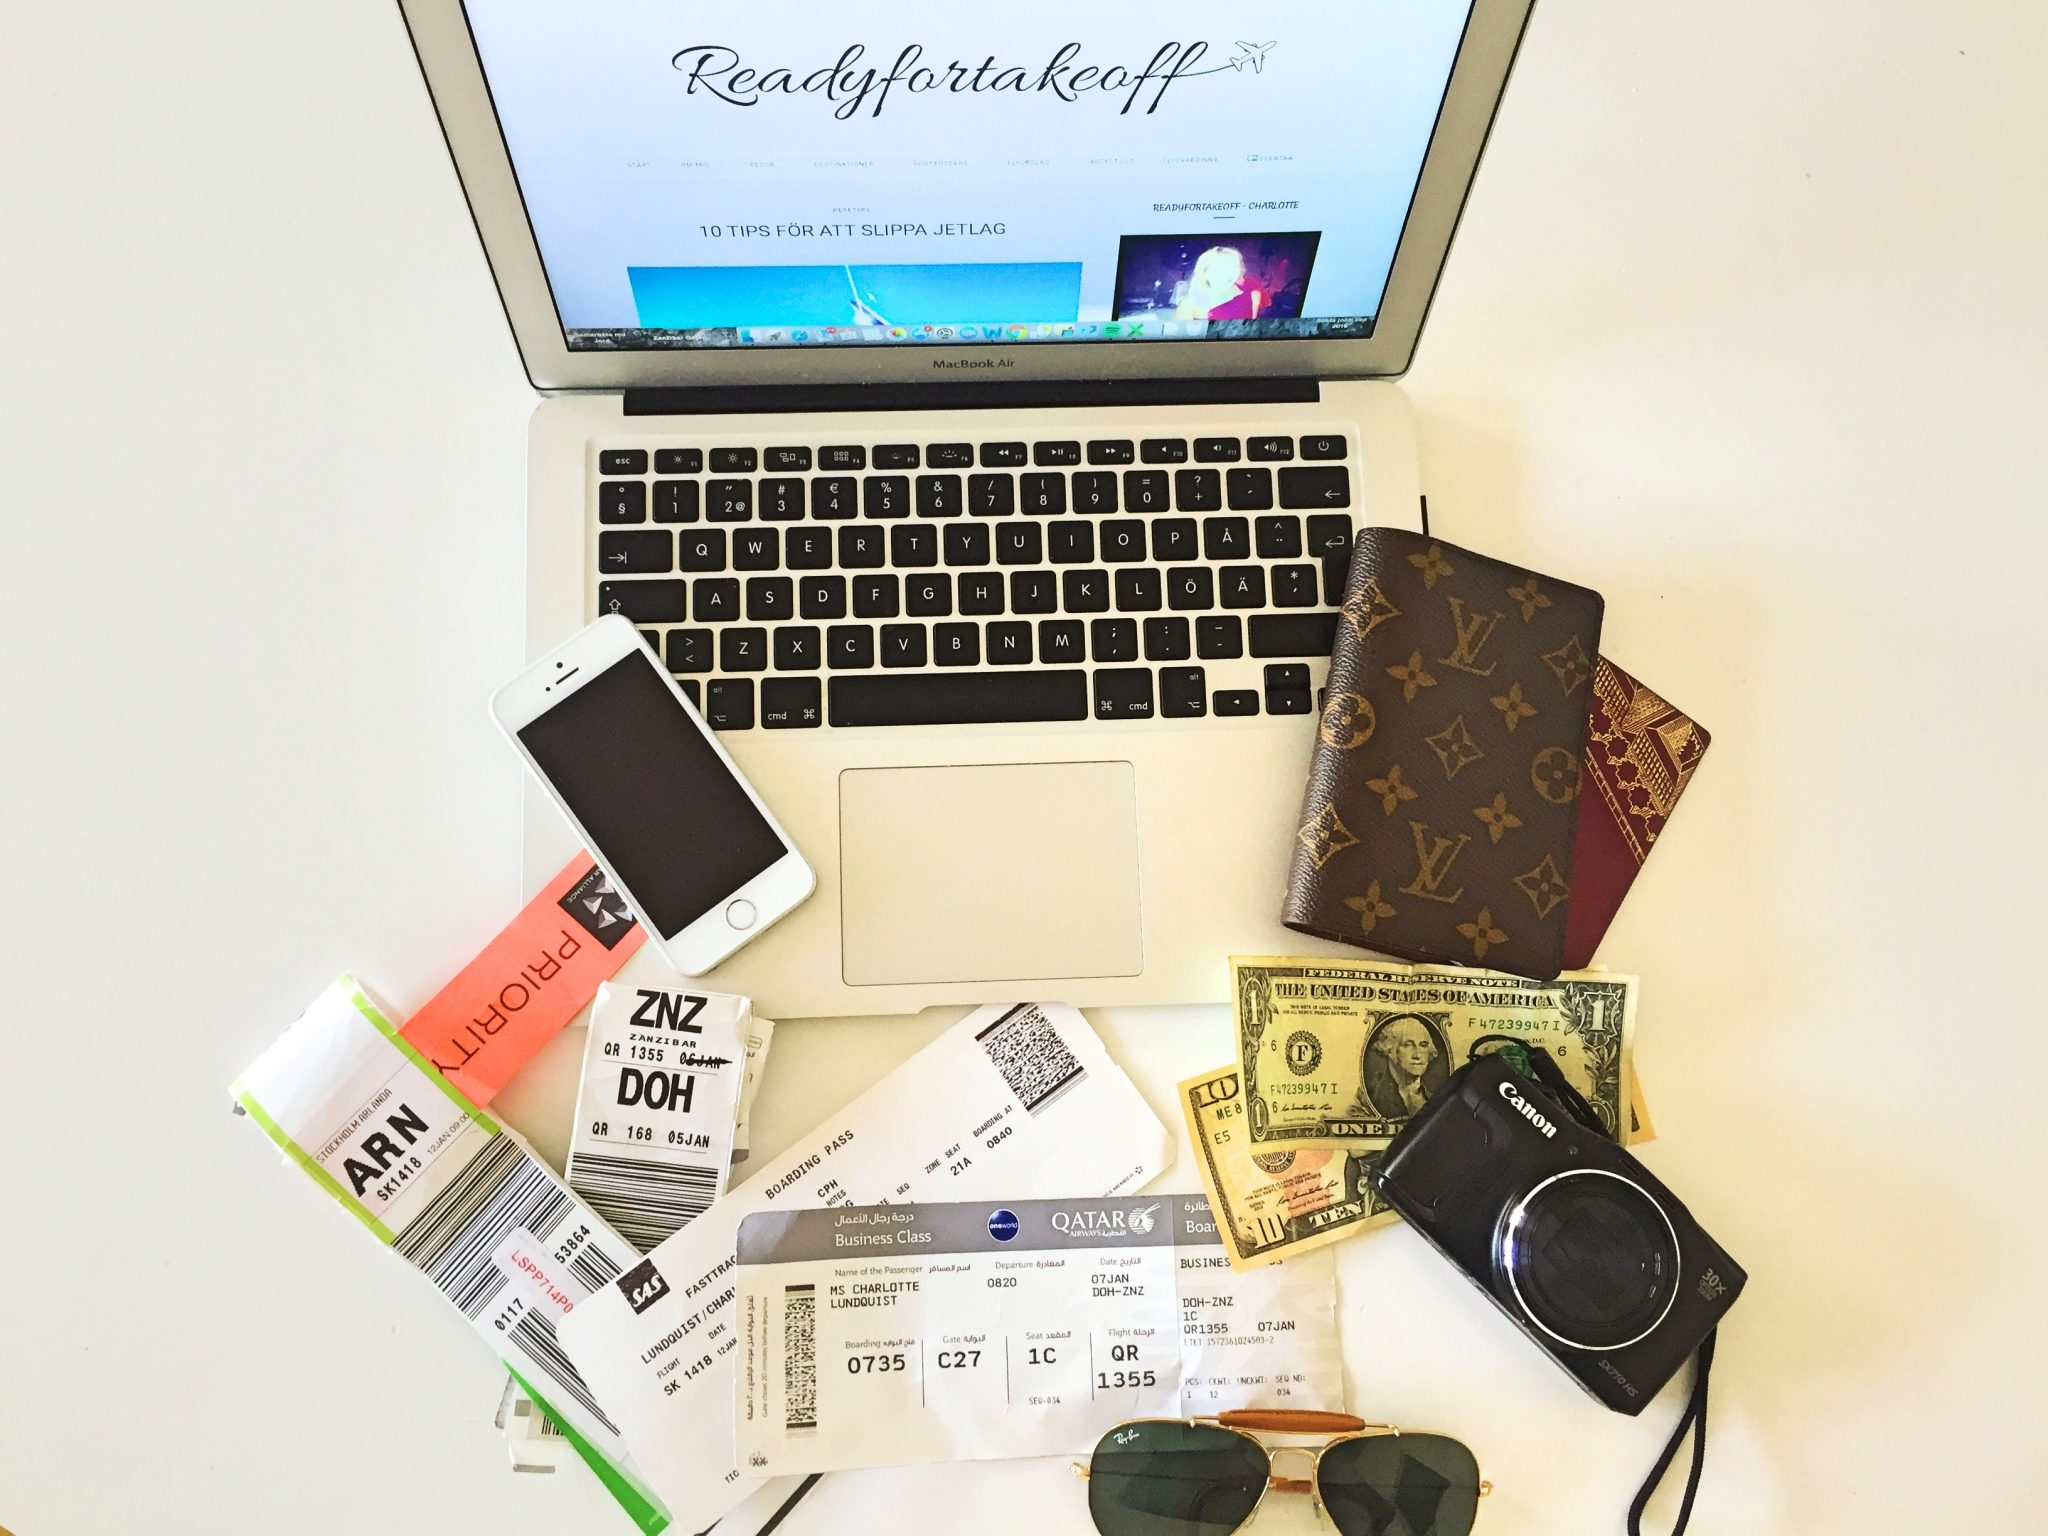 A picture of things that are usually in my bag when I travel